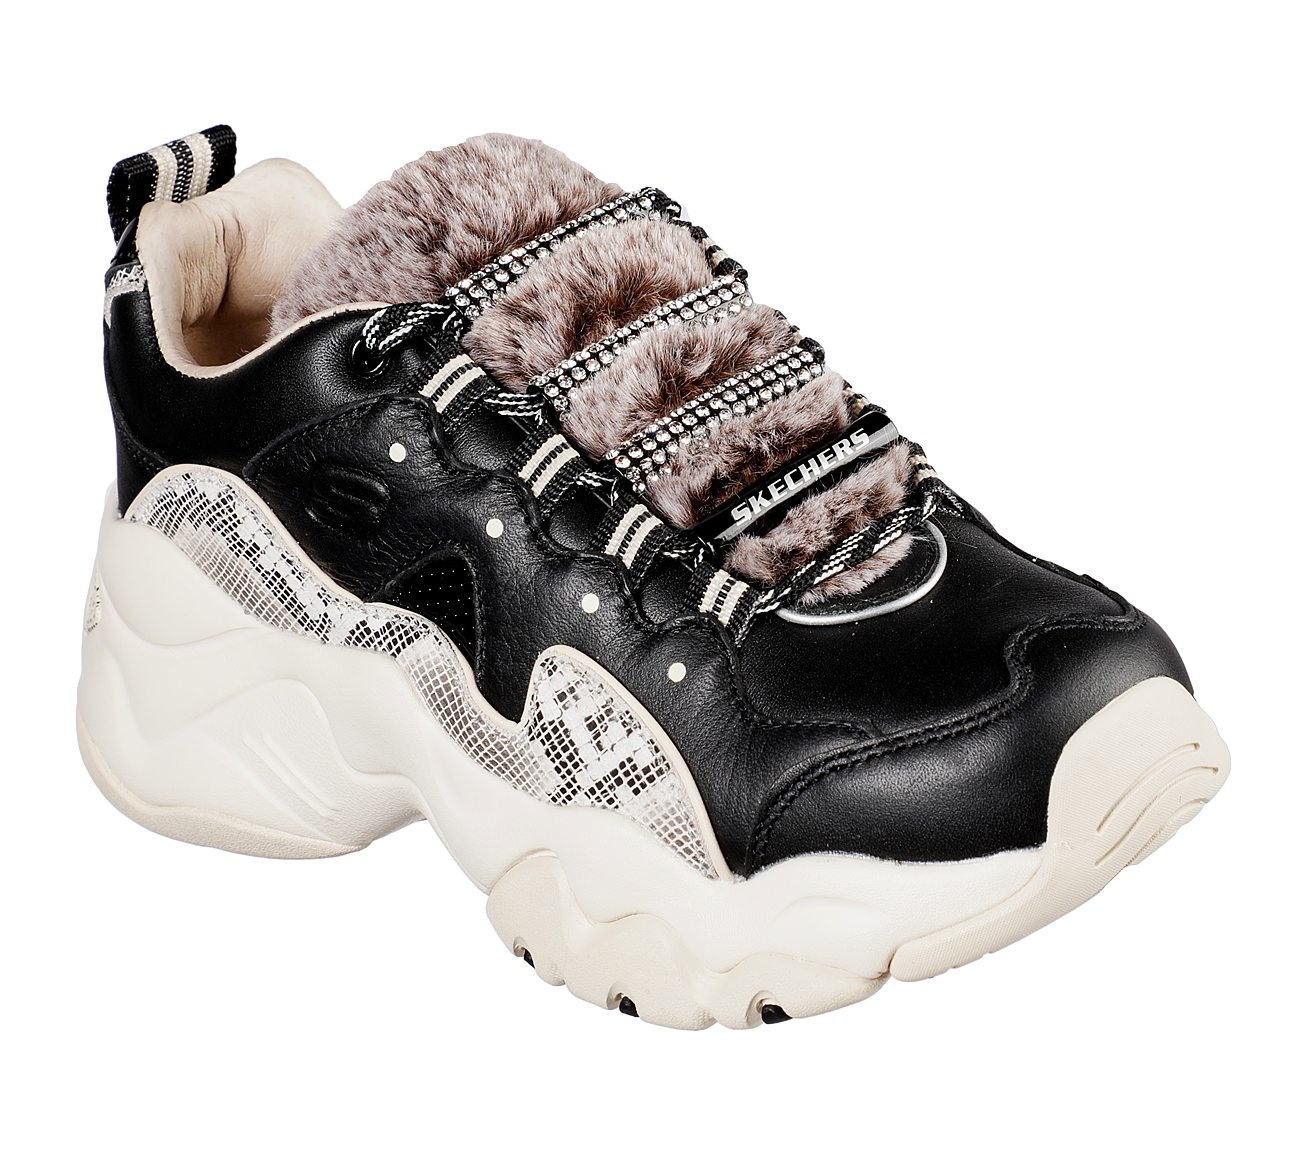 Skechers Premium Heritage: D'Lites 3 - Fancy Day